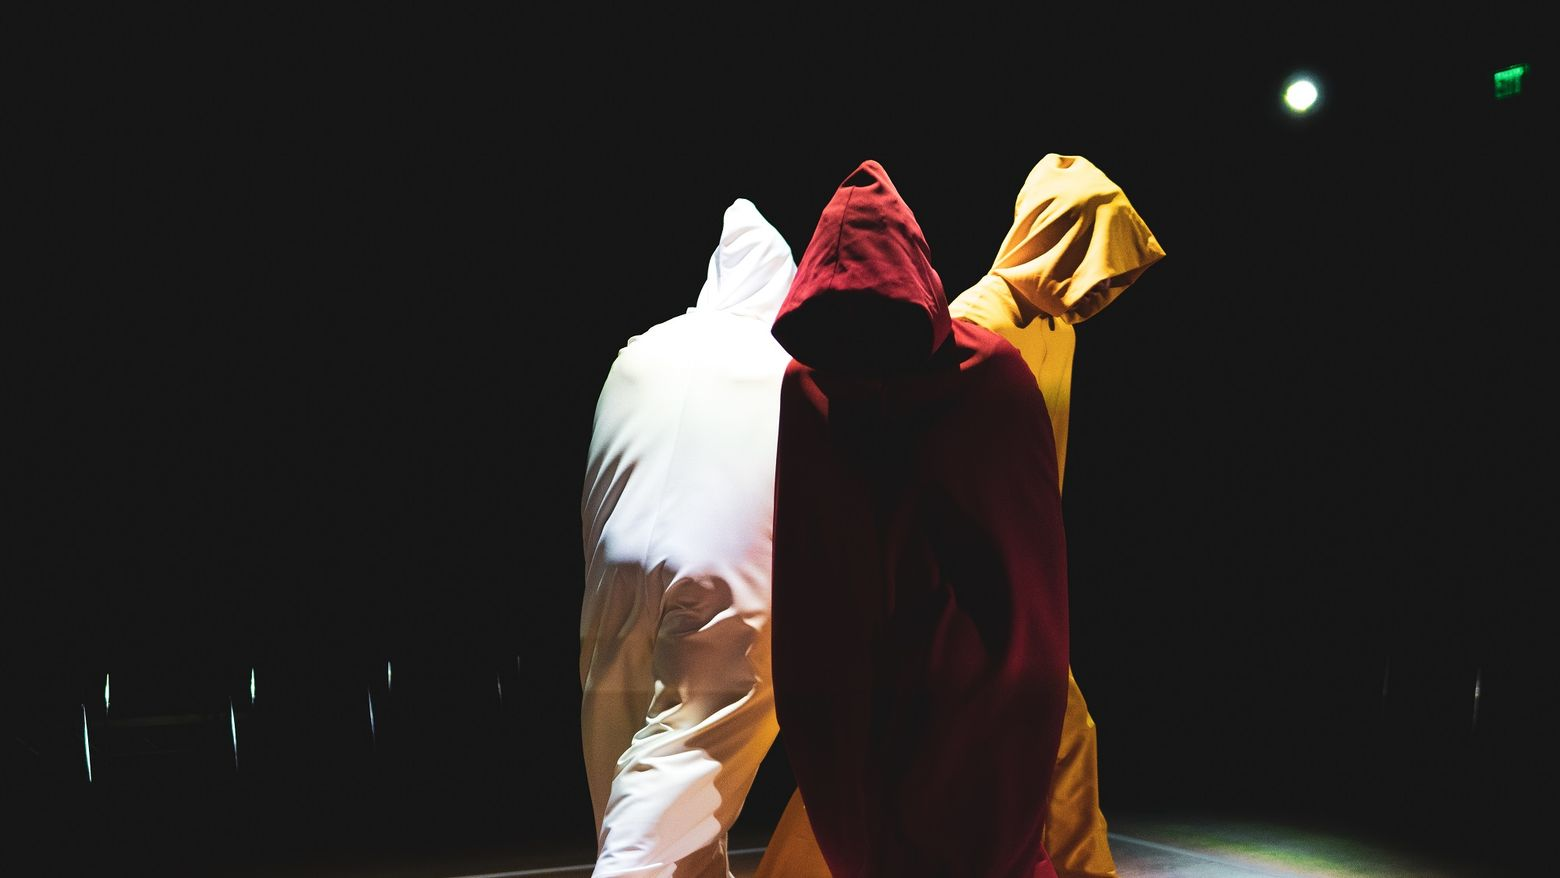 Three figures in hoods walk around a stage